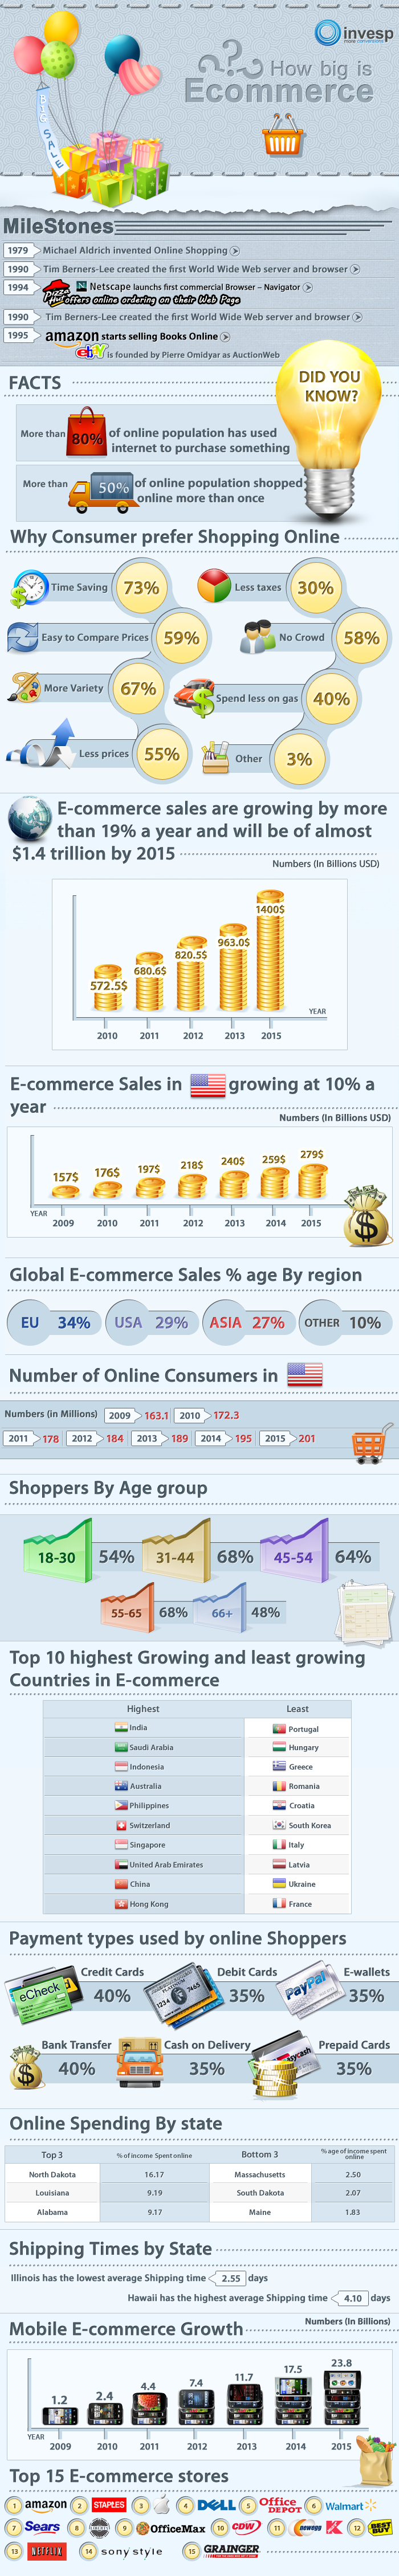 Infographic: How big is ecommerce?